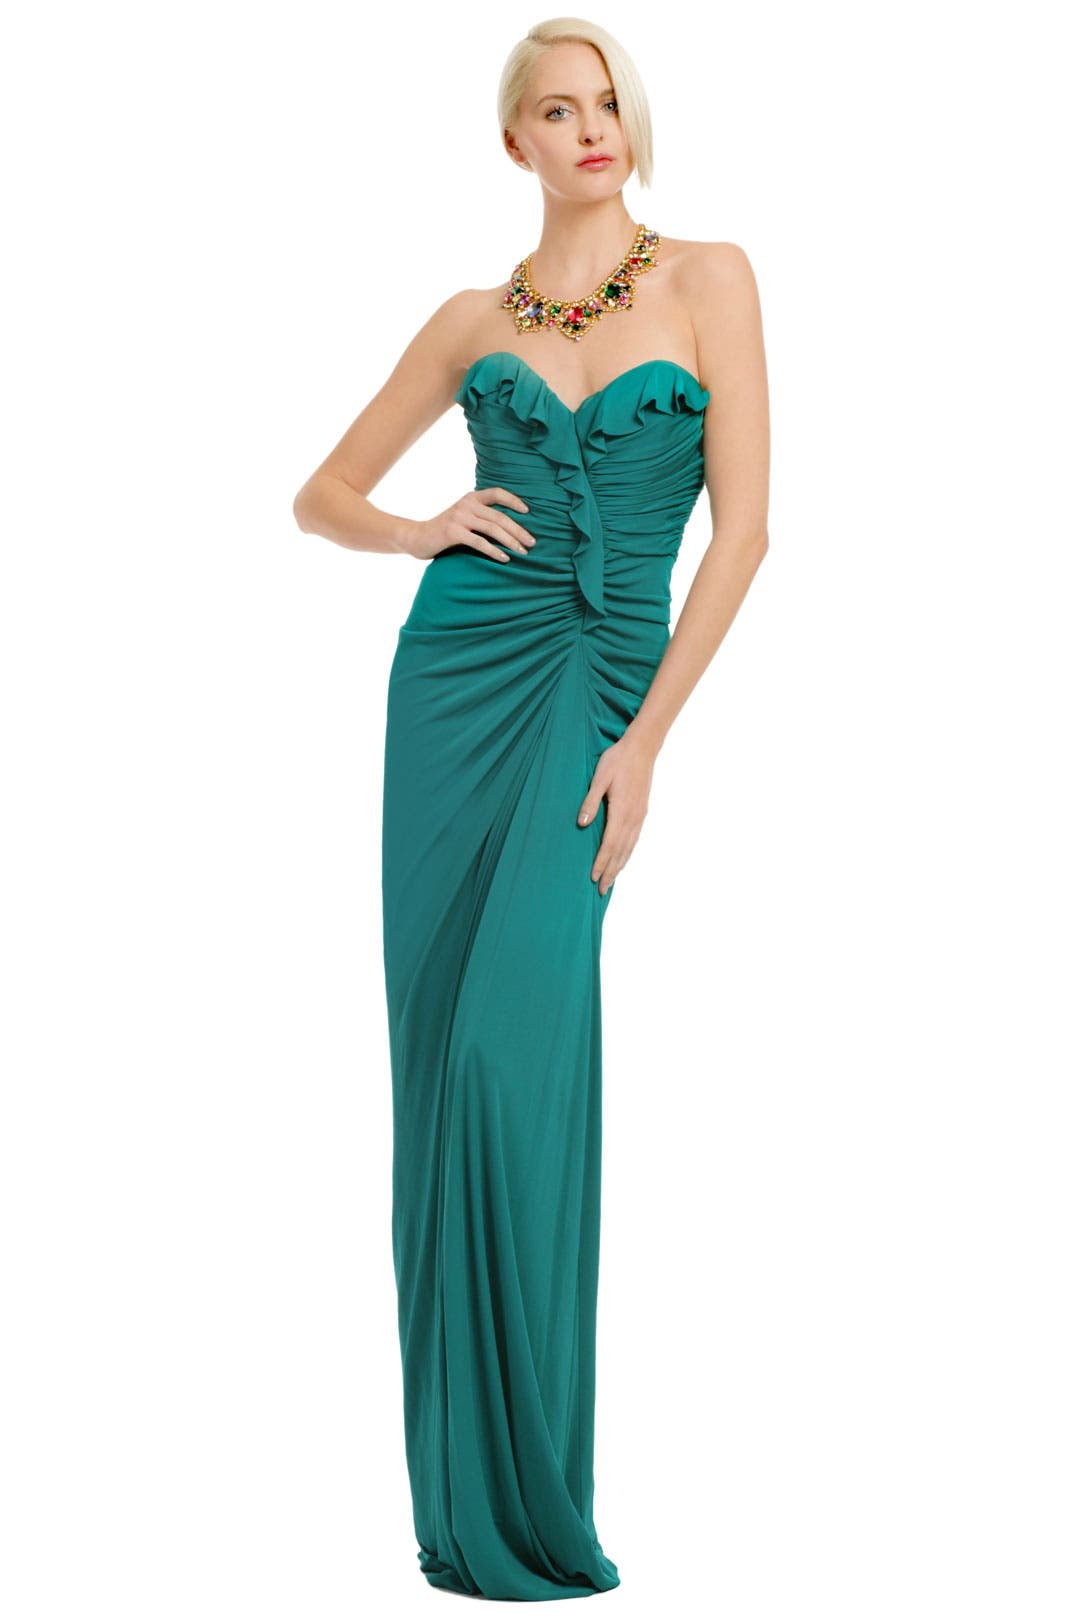 Aqua Queen Gown by Badgley Mischka